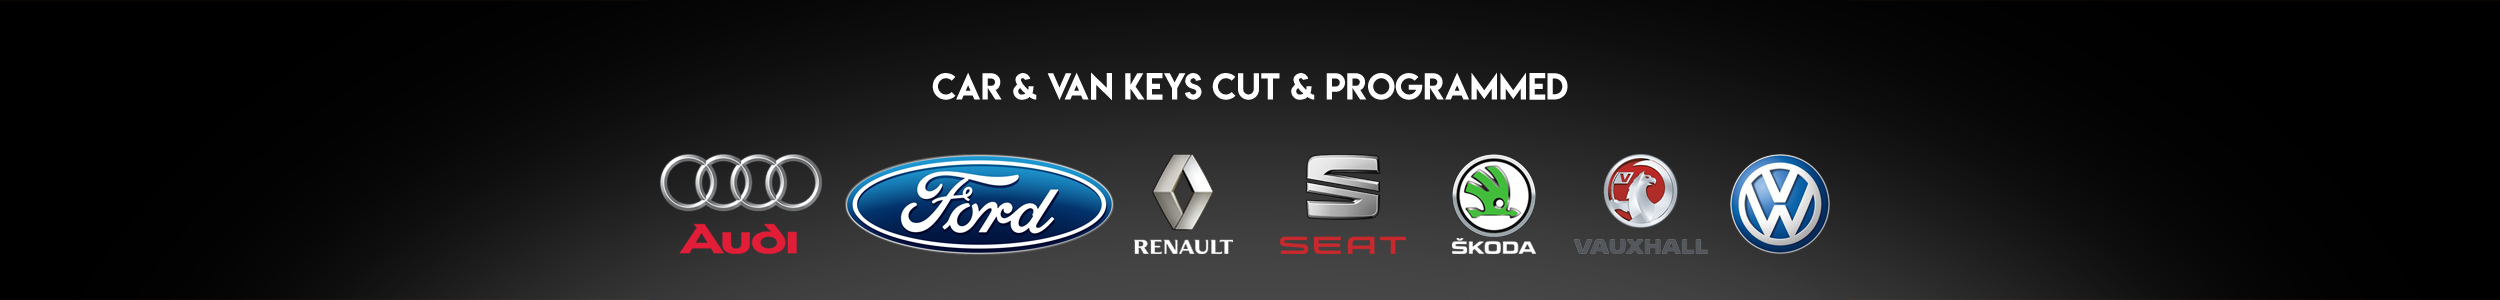 MB Lock & Key Auto Locksmiths can cut and program keys for Audio, Ford, Renault, Seat, Skoda, Vauxhall and Volkswagen van and car models.